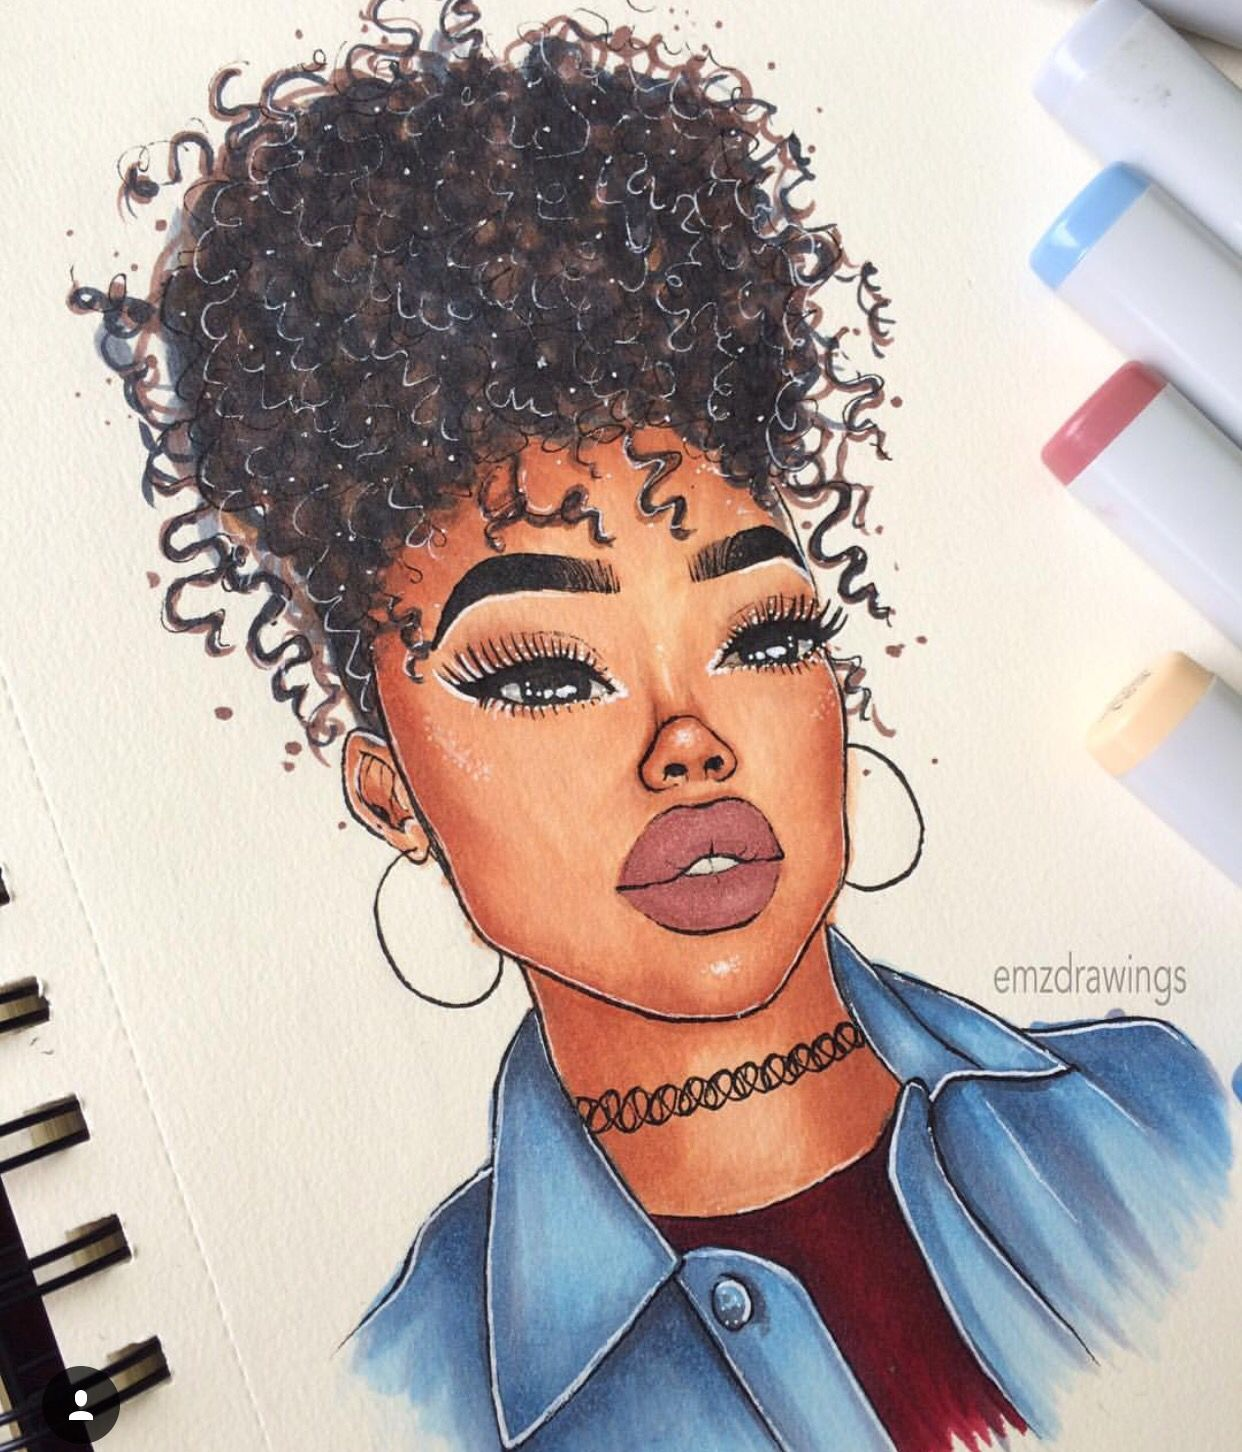 Emzdrawings Be Inspirational Mz Manerz Being Well Dressed Is A Beautiful Form Of Confidence Ha Drawings Of Black Girls Black Girl Art Black Art Pictures